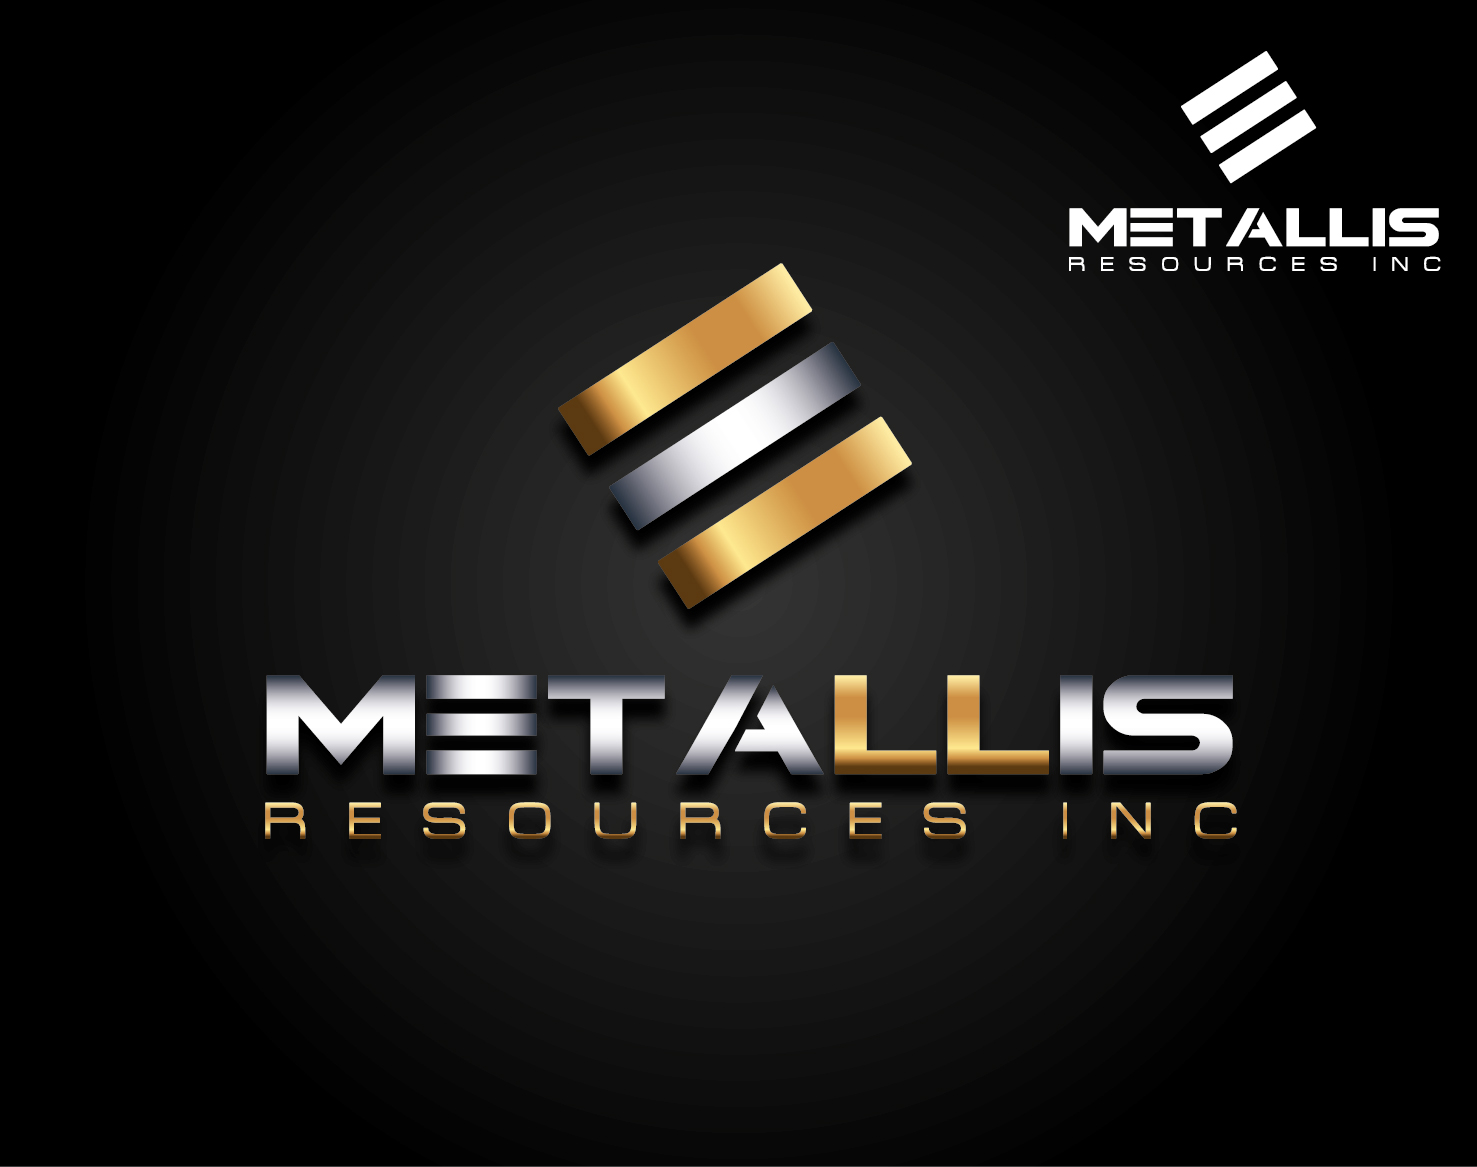 Logo Design by VENTSISLAV KOVACHEV - Entry No. 23 in the Logo Design Contest Metallis Resources Inc Logo Design.